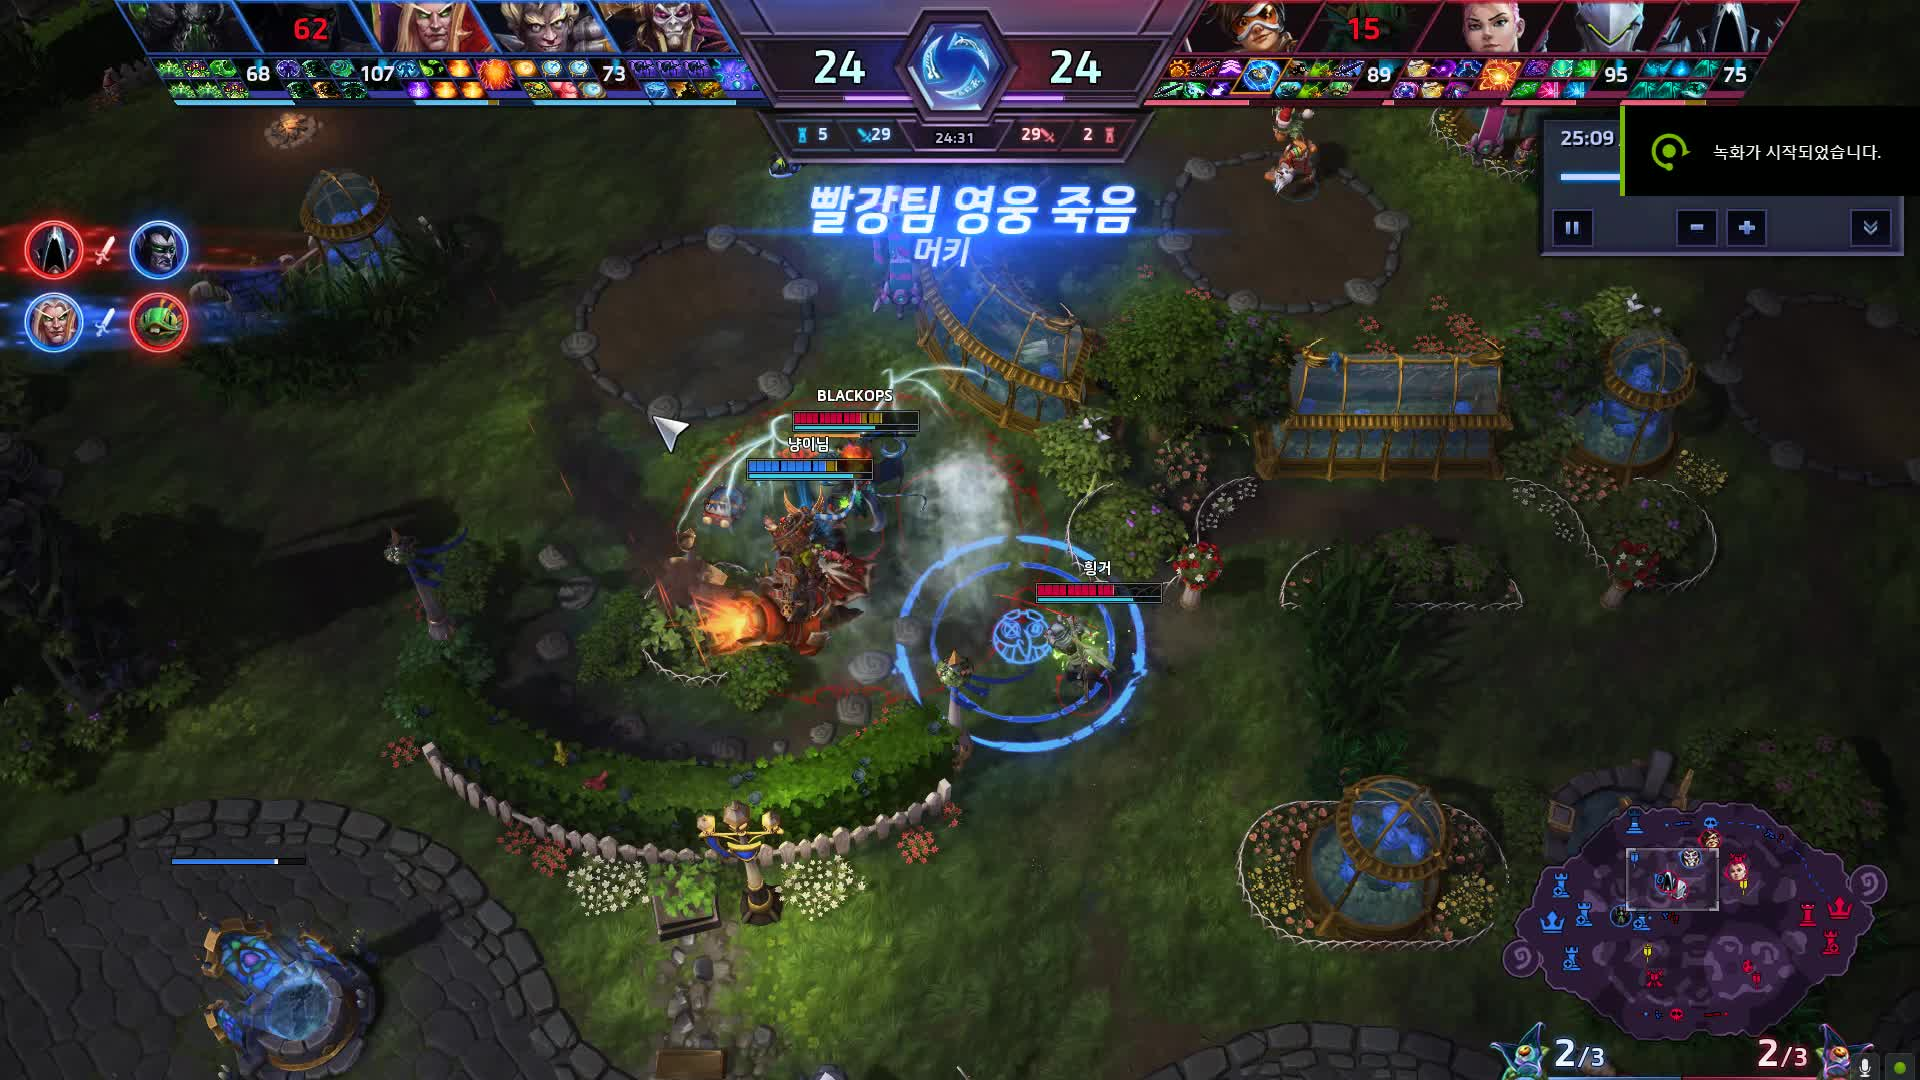 heroesofthestorm, Heroes of the Storm 2019.04.07 - 12.24.46.03 GIFs